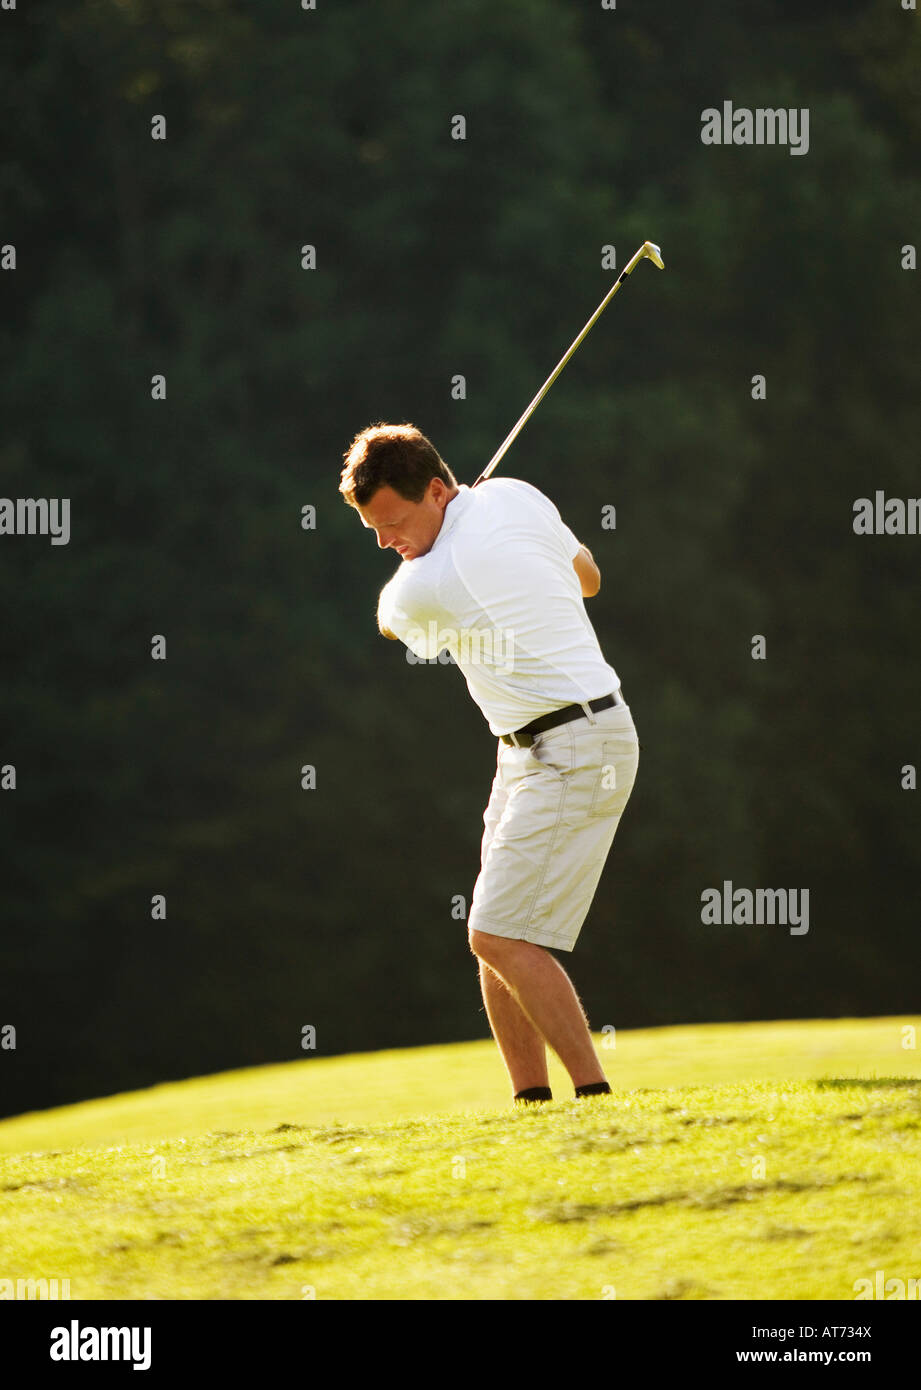 Austria, Male golfer swinging club on fairway - Stock Image